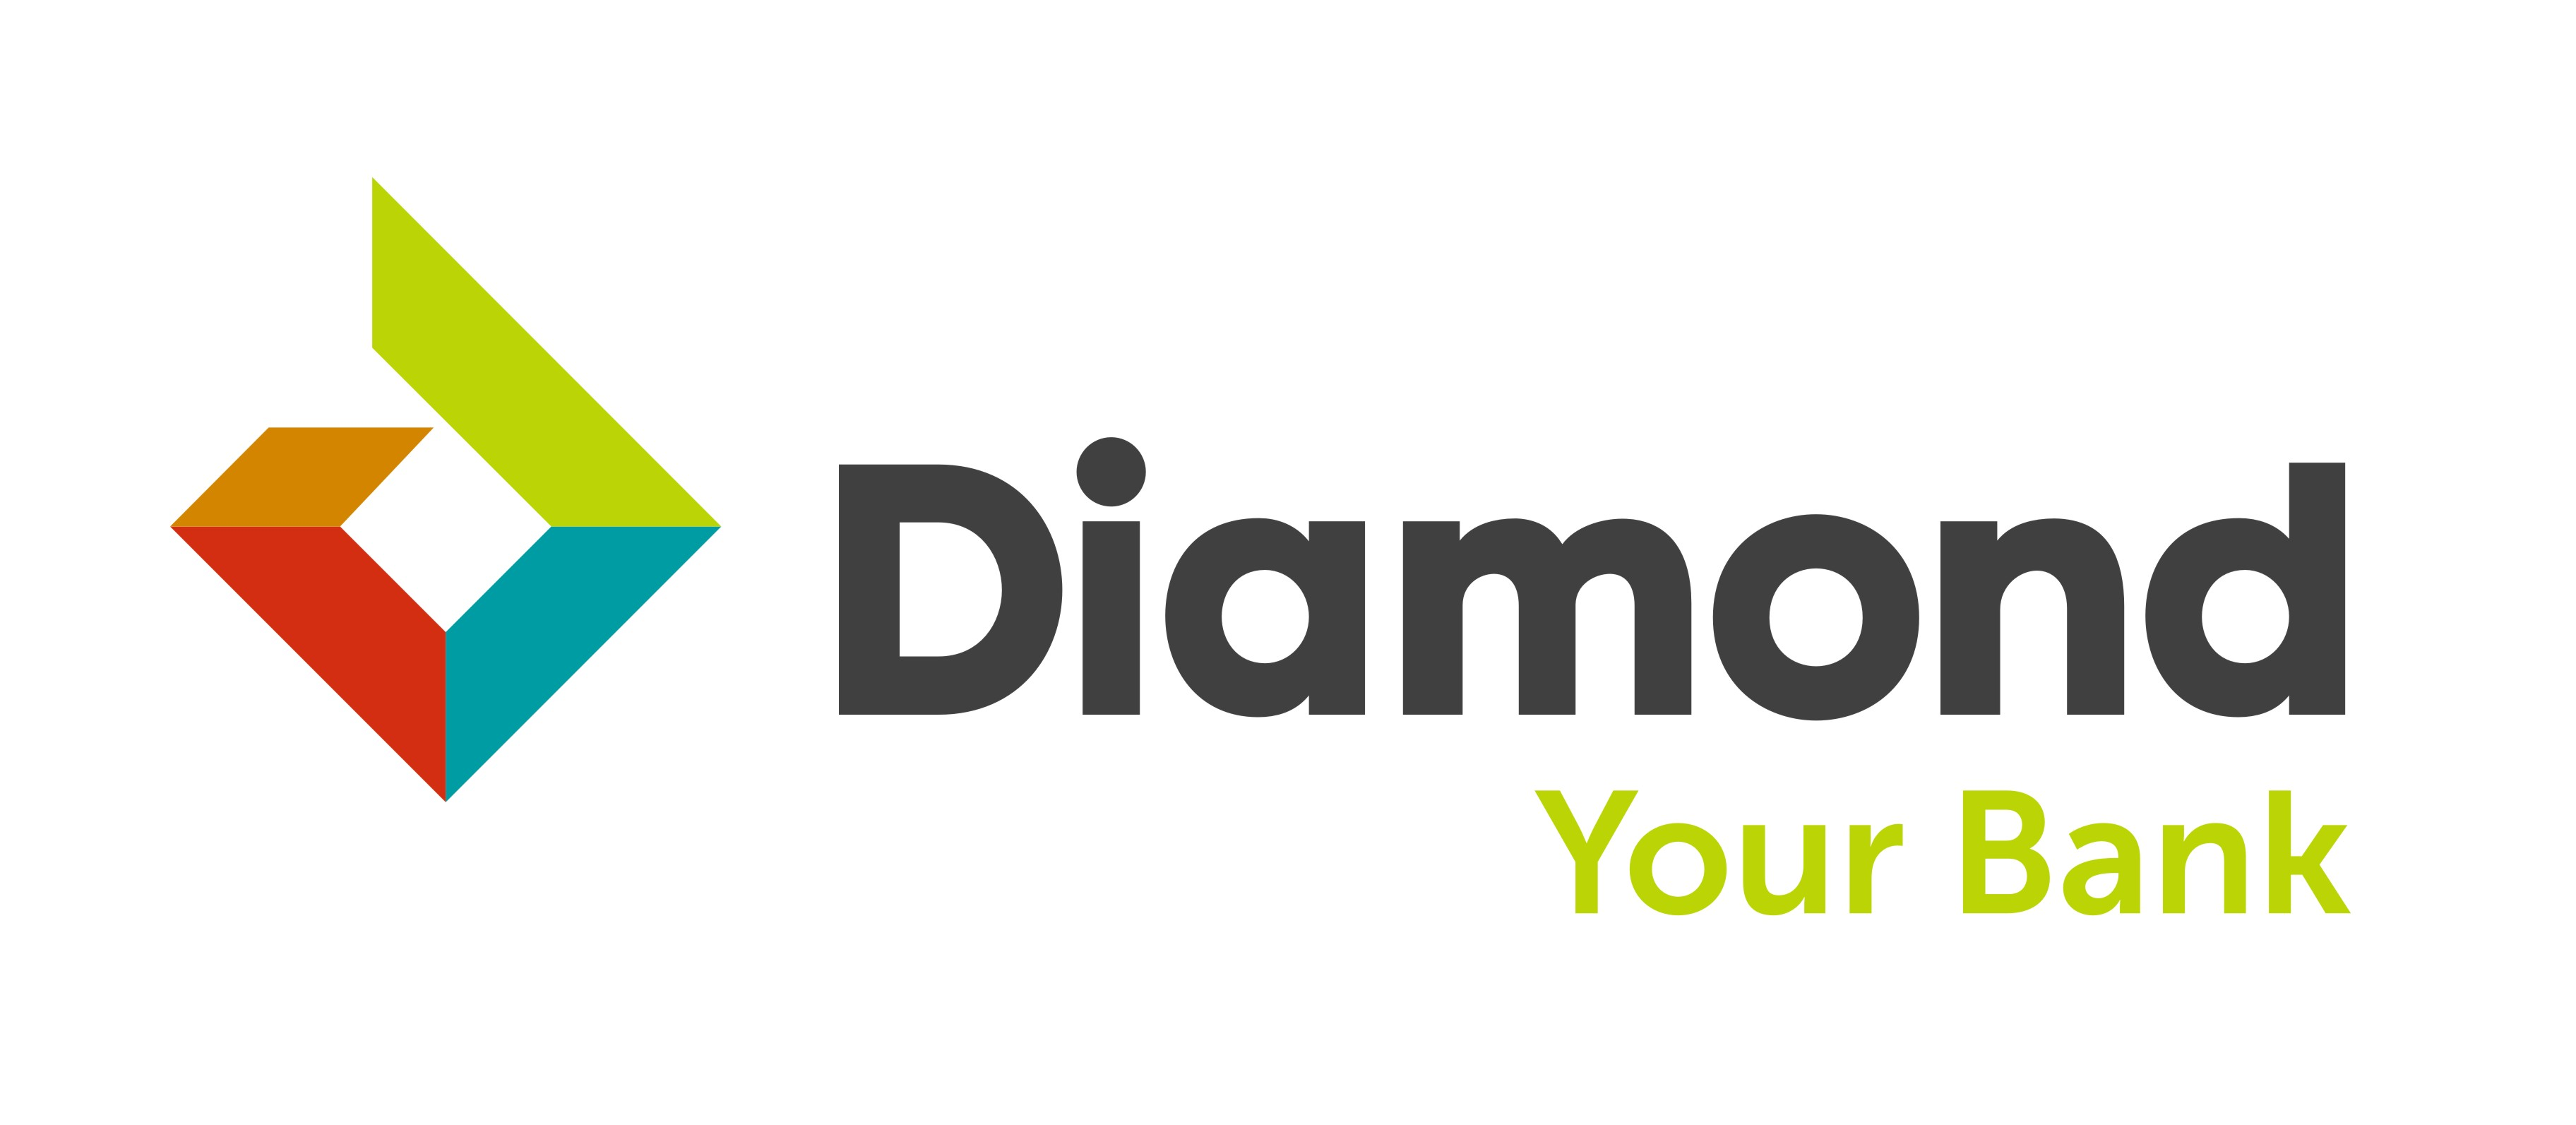 Diamond Bank Customer Care Service & Contact Details